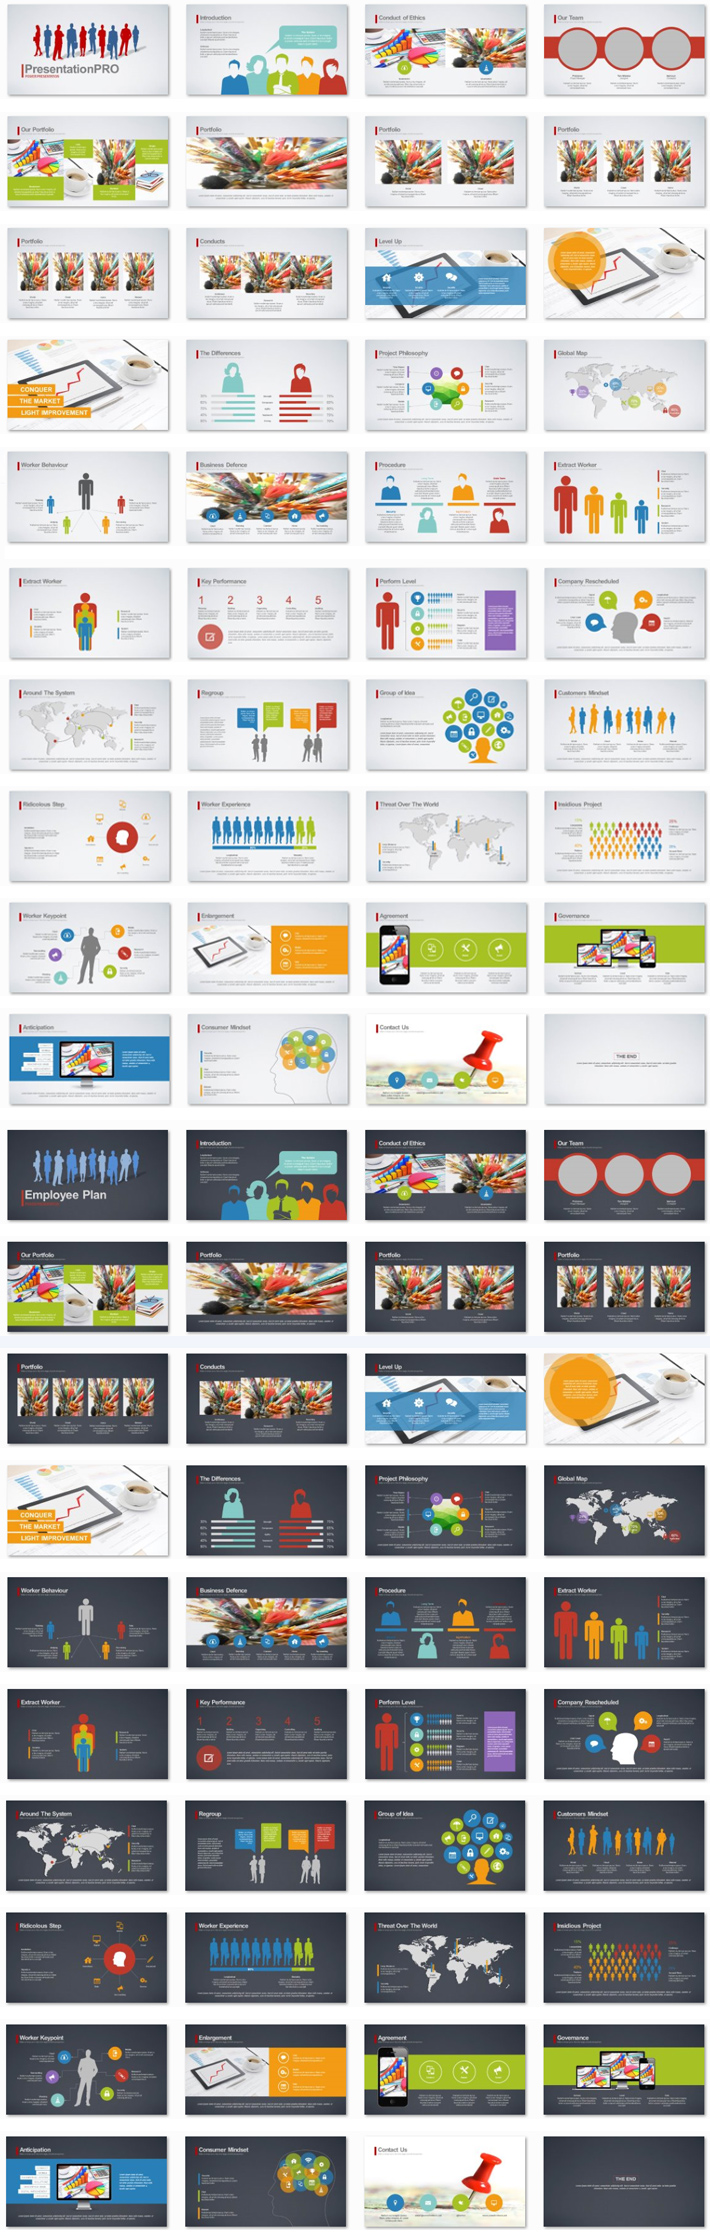 NEW Power Presentation: The Employee Plan PPT Premium PowerPoint Presentation Template Slide Set